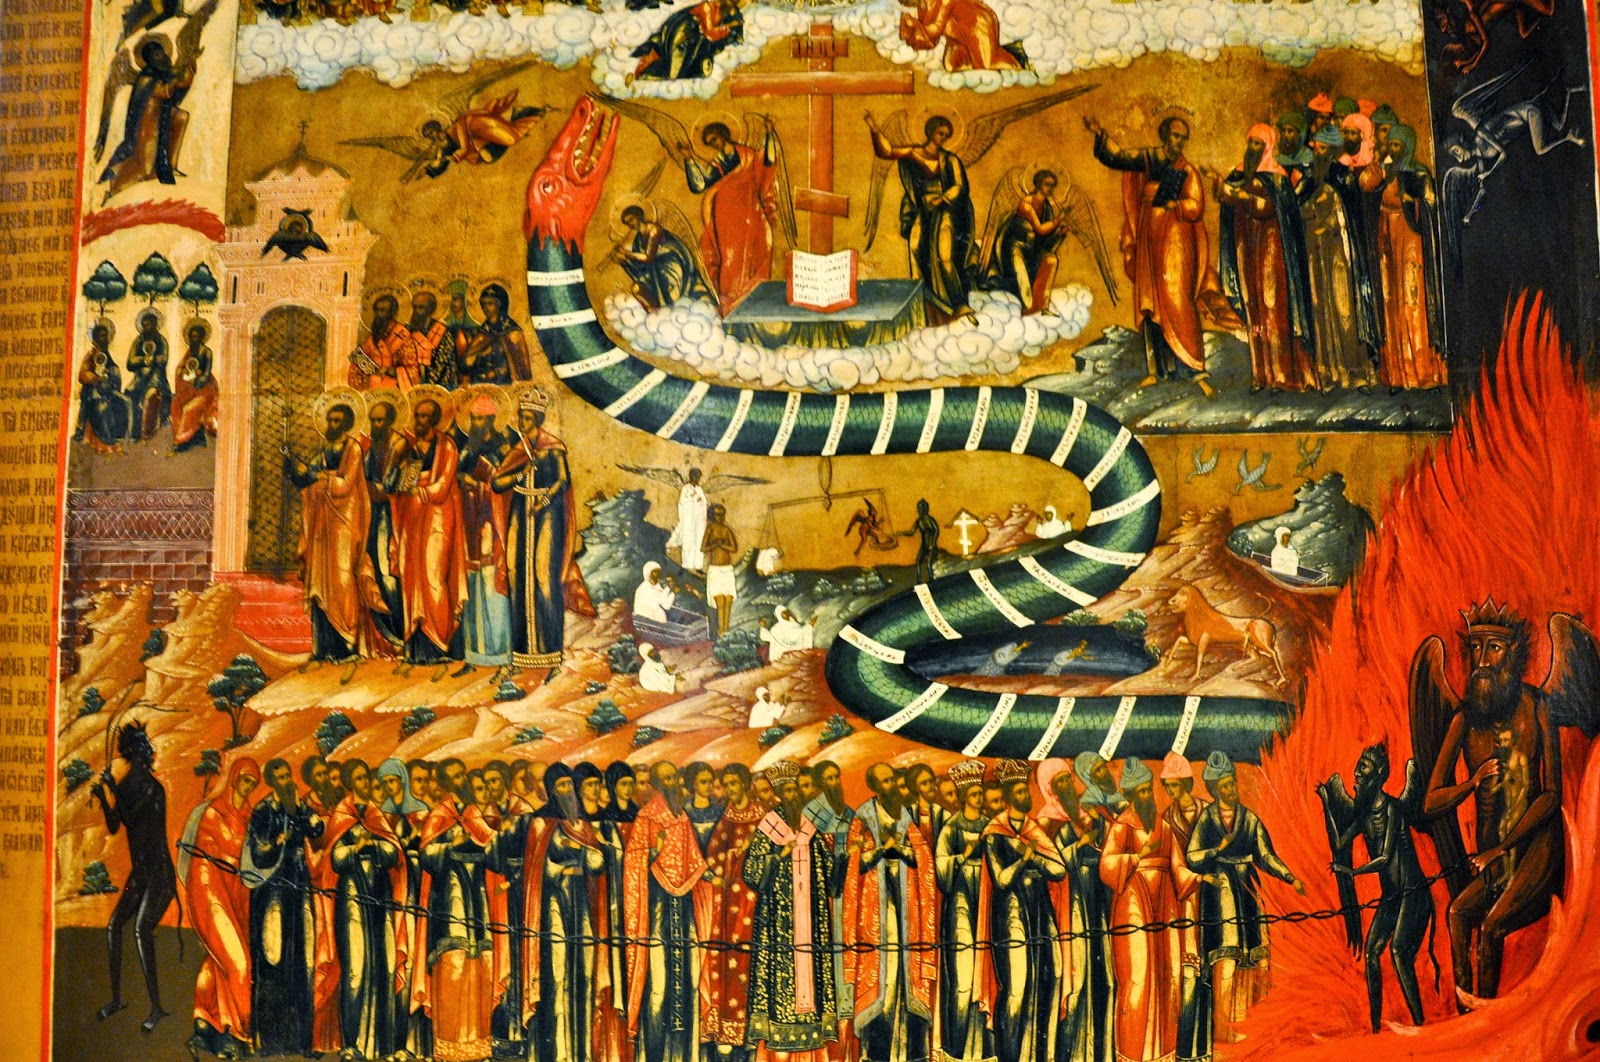 A detail of a Russian icon from the 19th century depicting the Last Judgment, Gallerie d'Italia, Palazzo Leoni Montanari, Vicenza, Italy